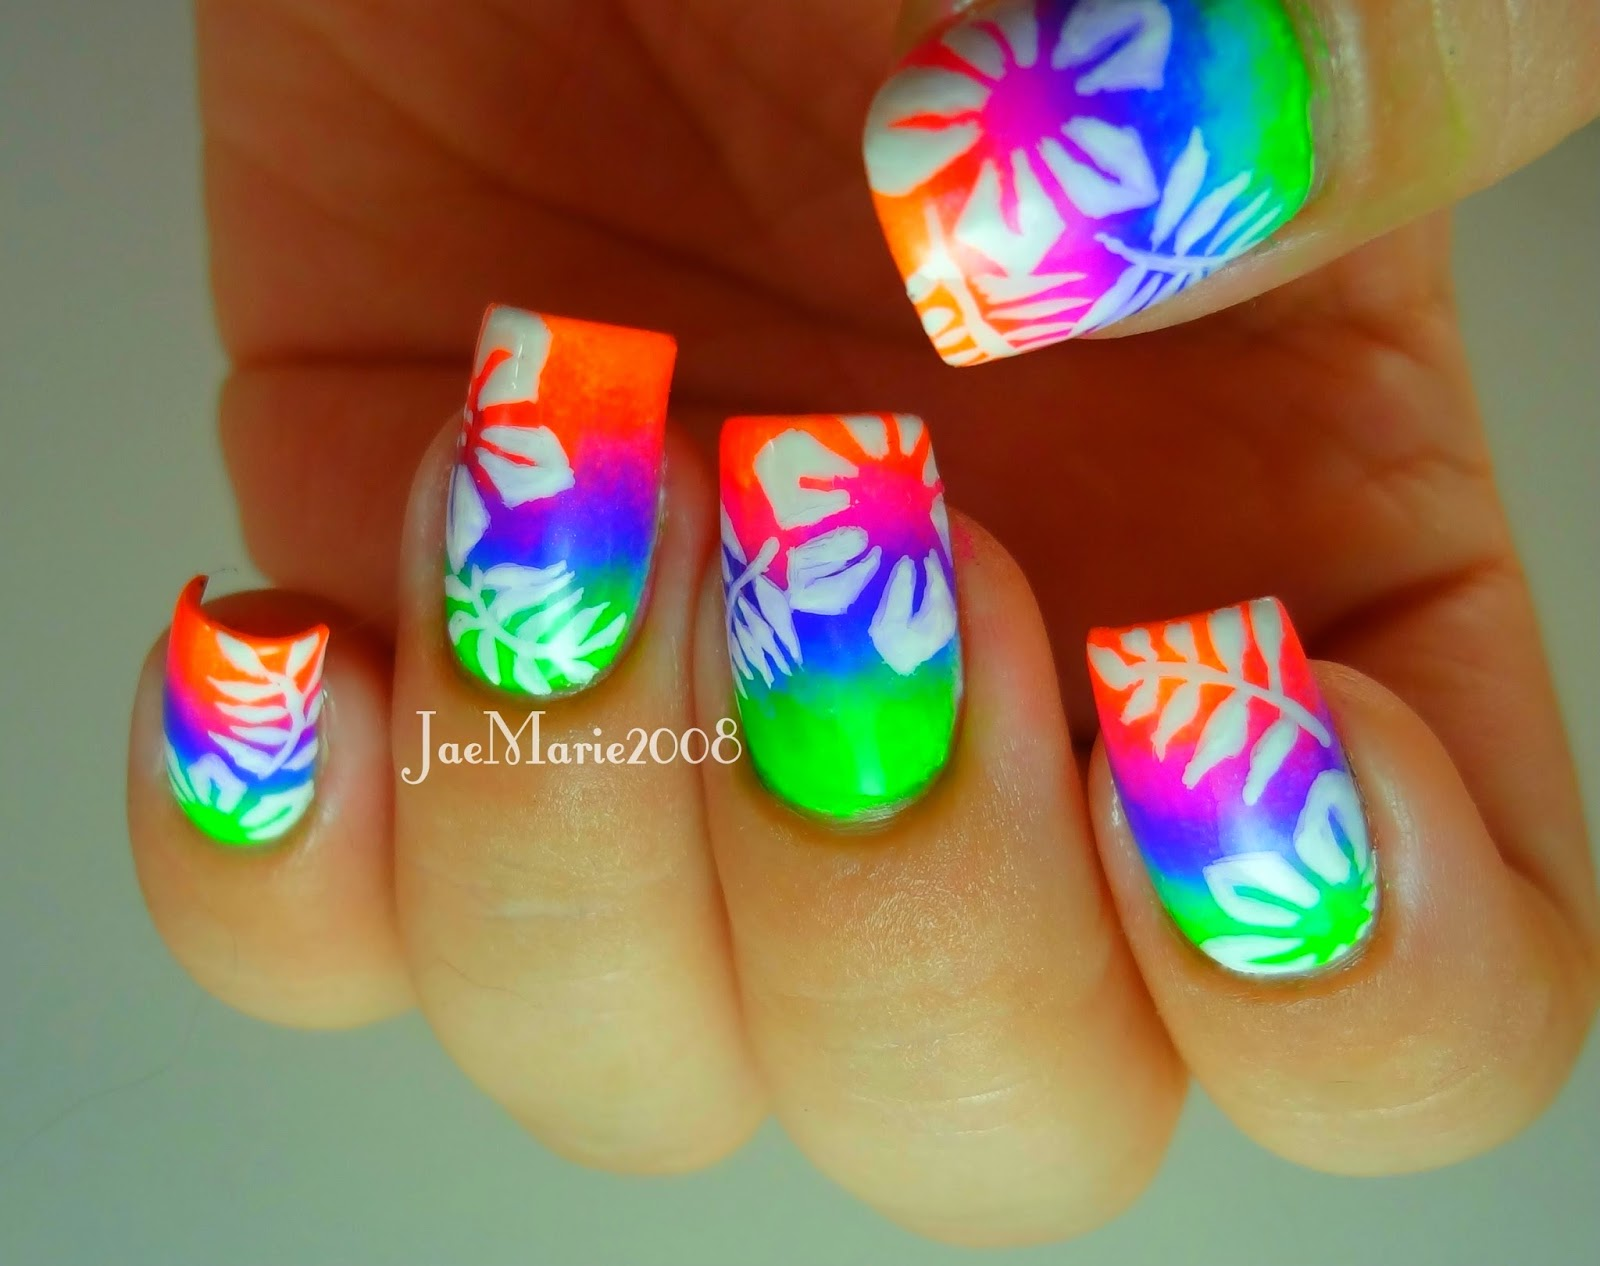 Summer acrylic nail designs summer nails summer nail colors summer gel nails summer colors for nails cute summer nail art prinsesfo Images